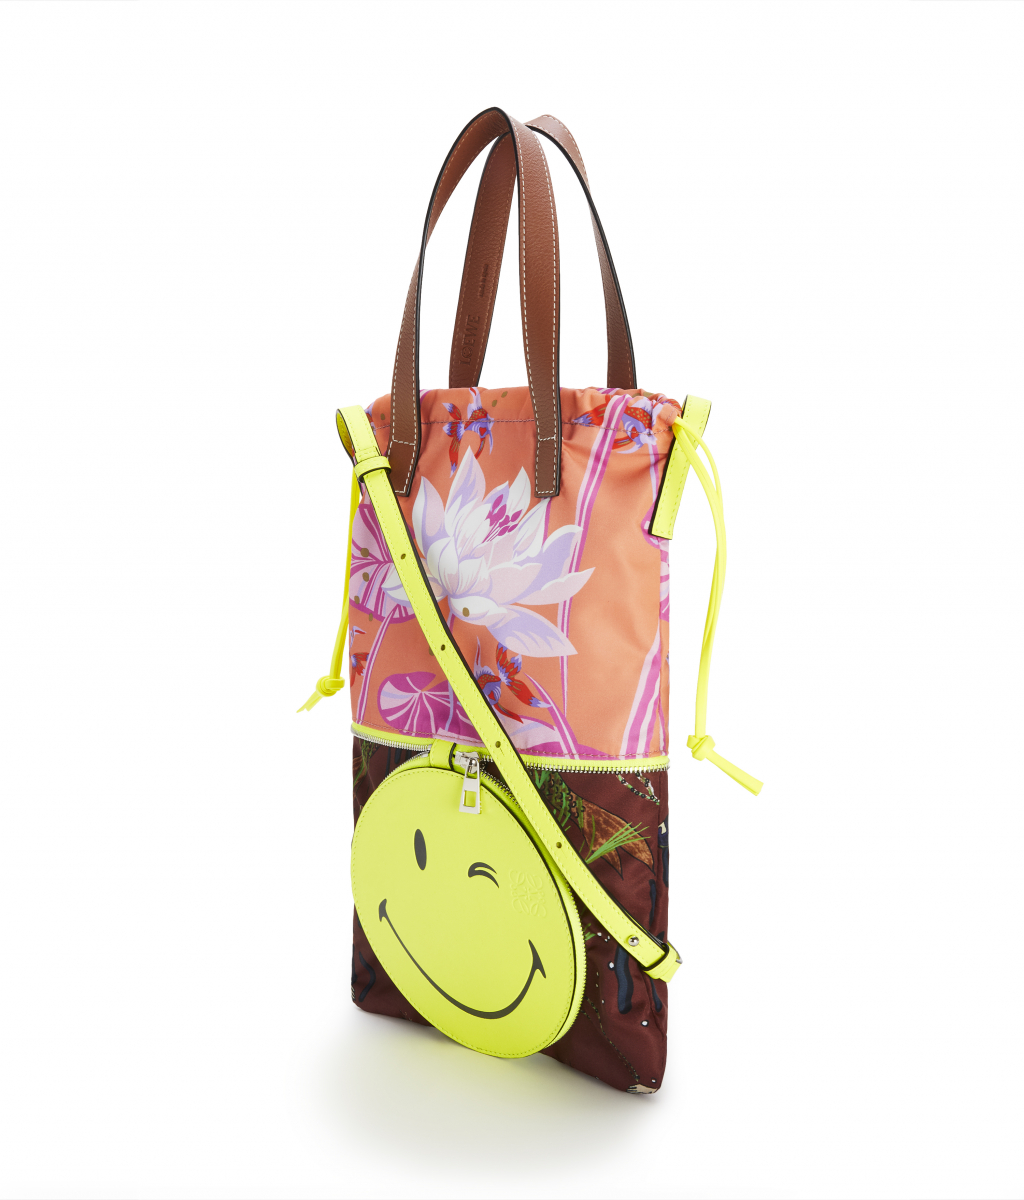 DOUBLE TOTE SMILEY WINK S BAG(W24.5×H37.5×D2cm)¥101,000 ※日本限定/ロエベ ジャパン クライアントサービス LOEWE Paula's 2020 featuring SmileyWorld®